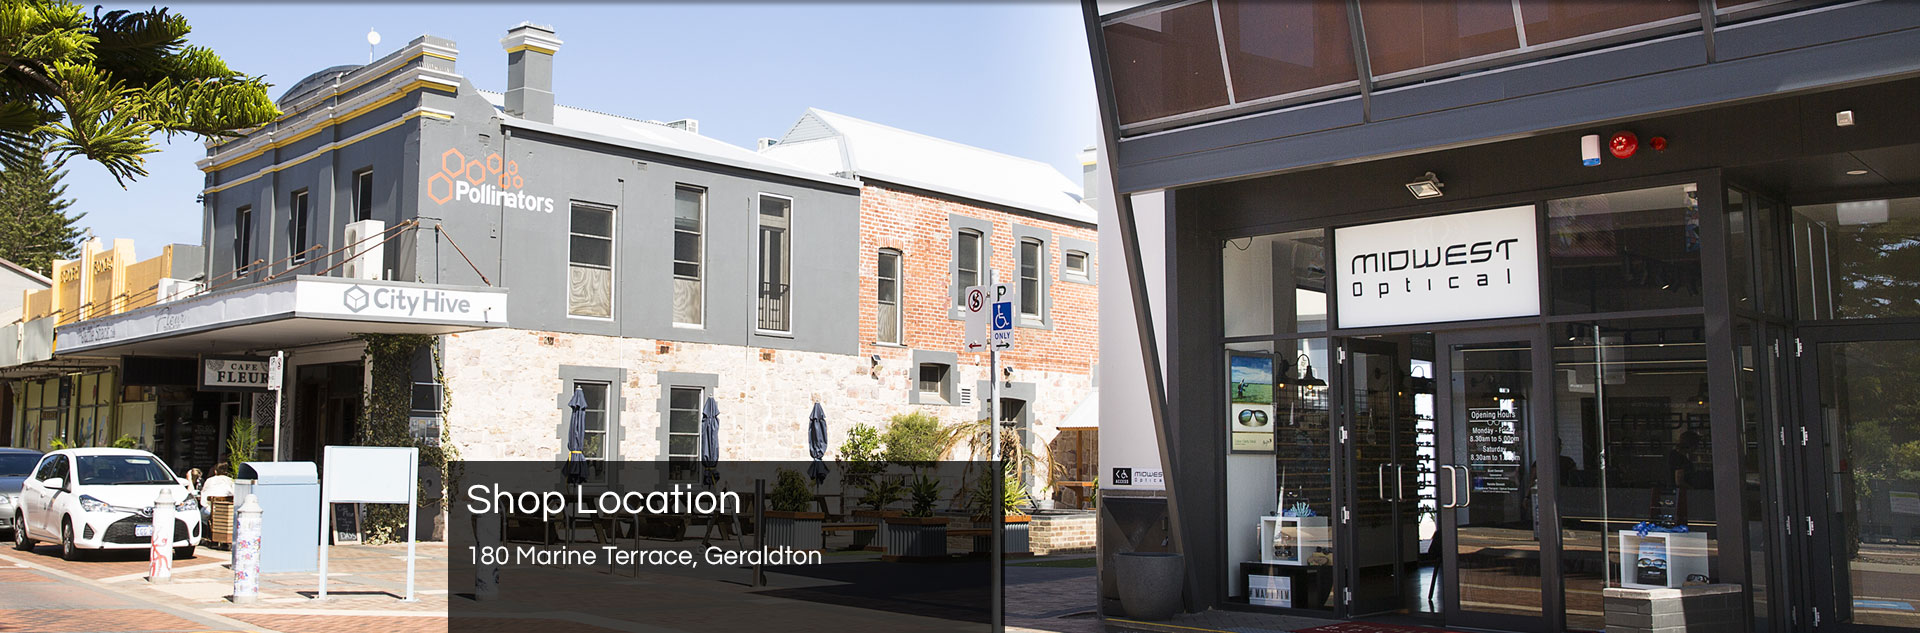 We are located at 180 Marriane Terrace in Geraldton